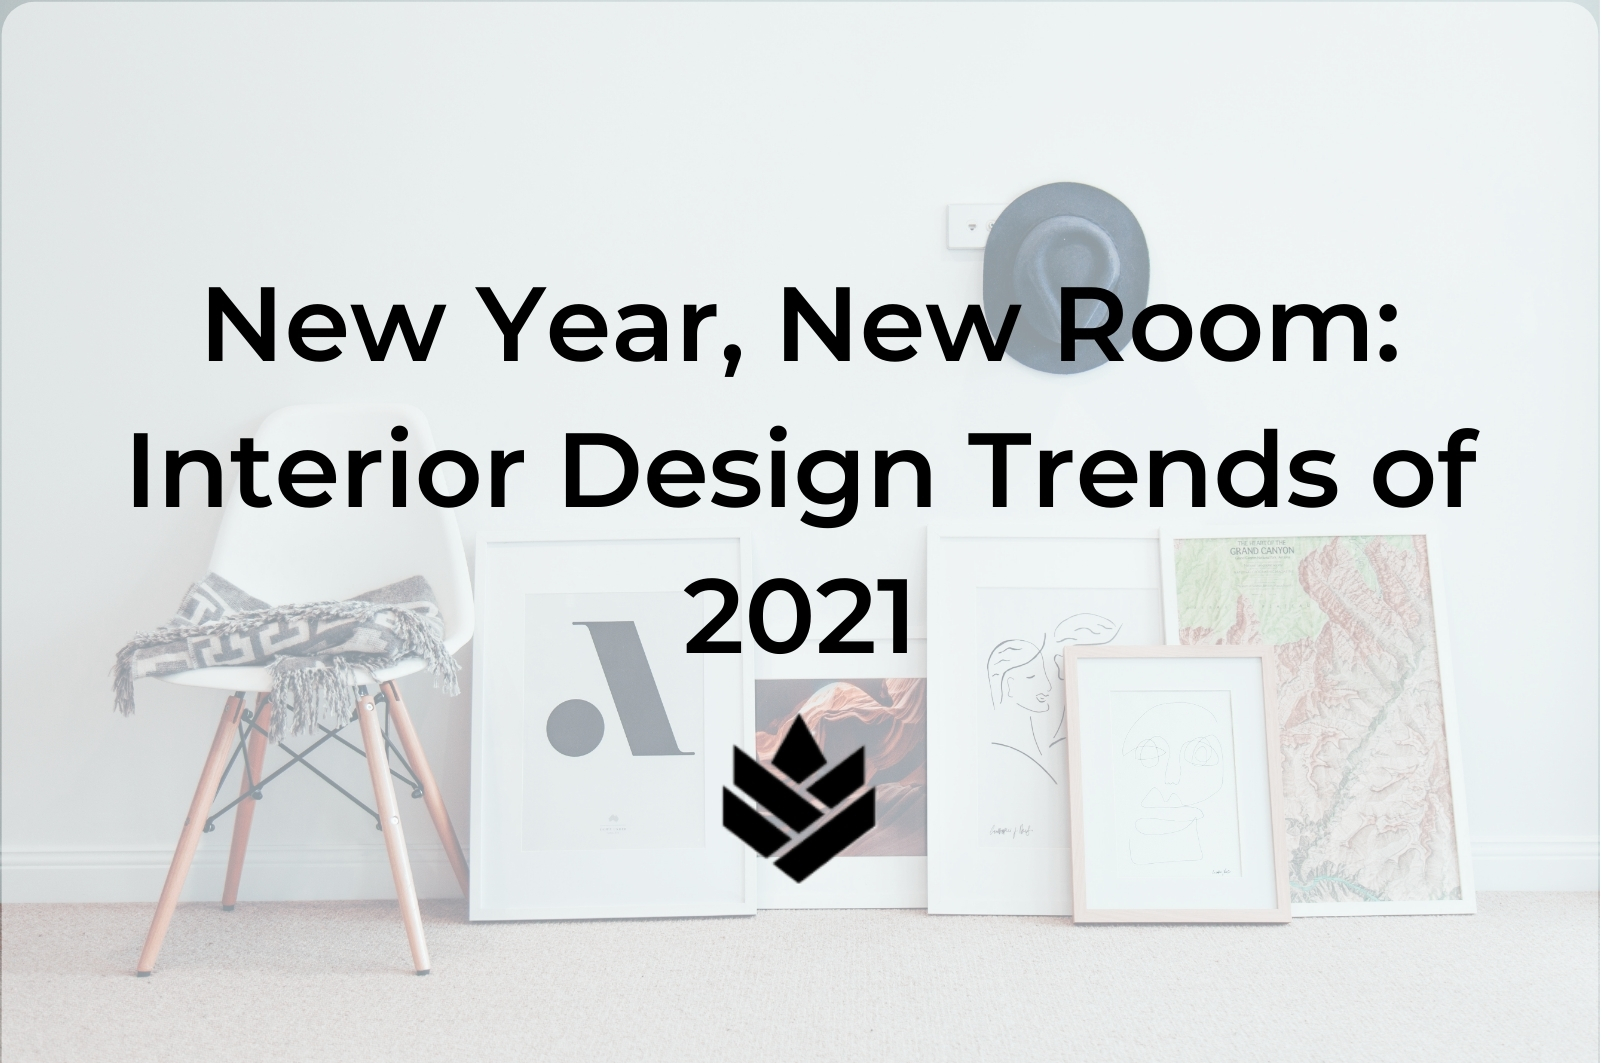 New Year, New Room: Interior Design Trends of 2021